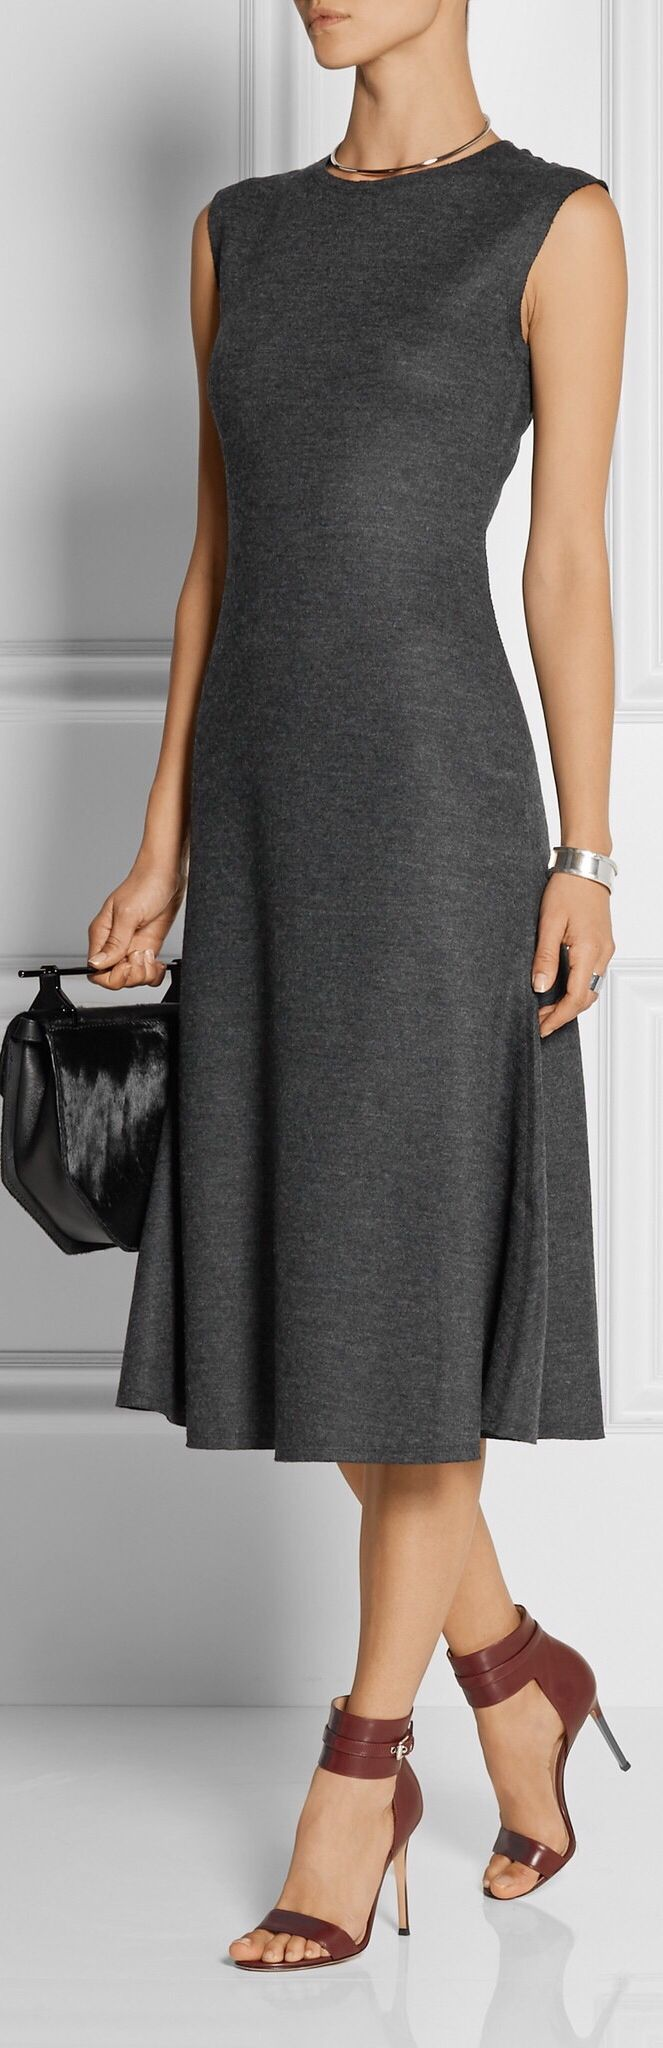 I like the style of this dress, although the neckline might be too high to look good on my broader shoulders. It's also a little long for me, but other than that....Dress | Streamlined | Sculptural | Ladylike |